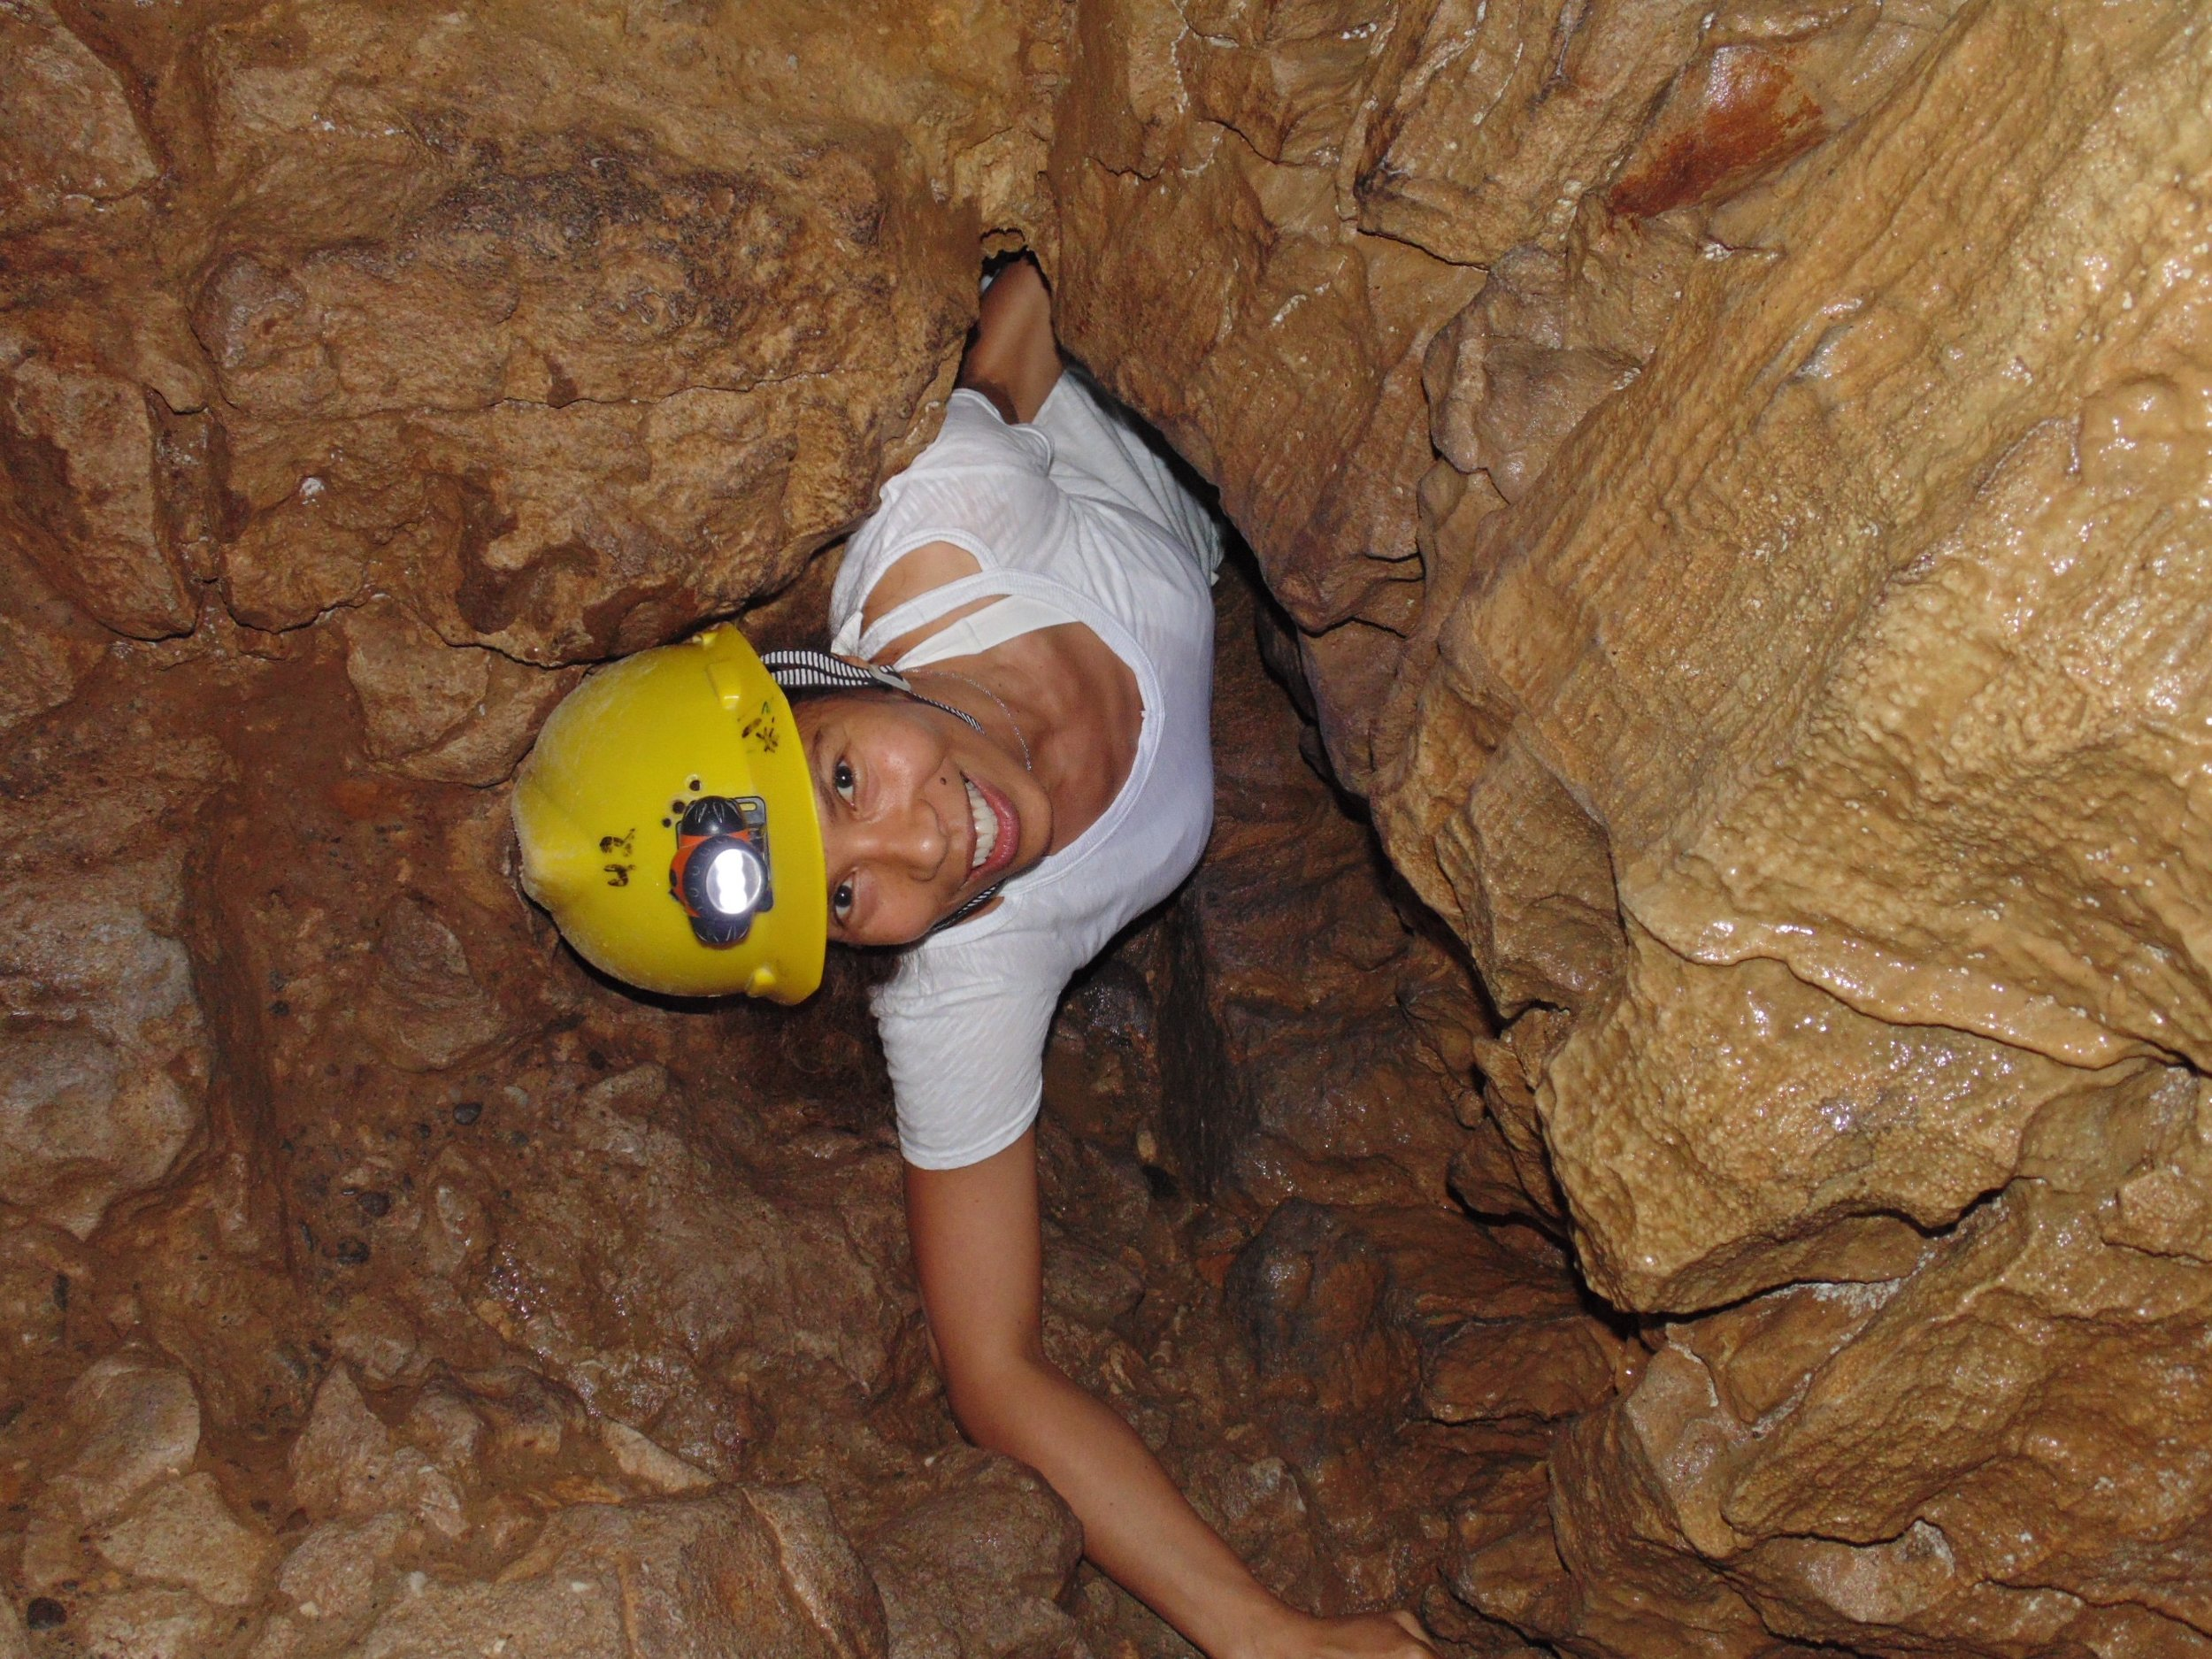 Patricia exploring the Venado Caves in Costa Rica, a limestone labyrinth that extends for almost 3 km.